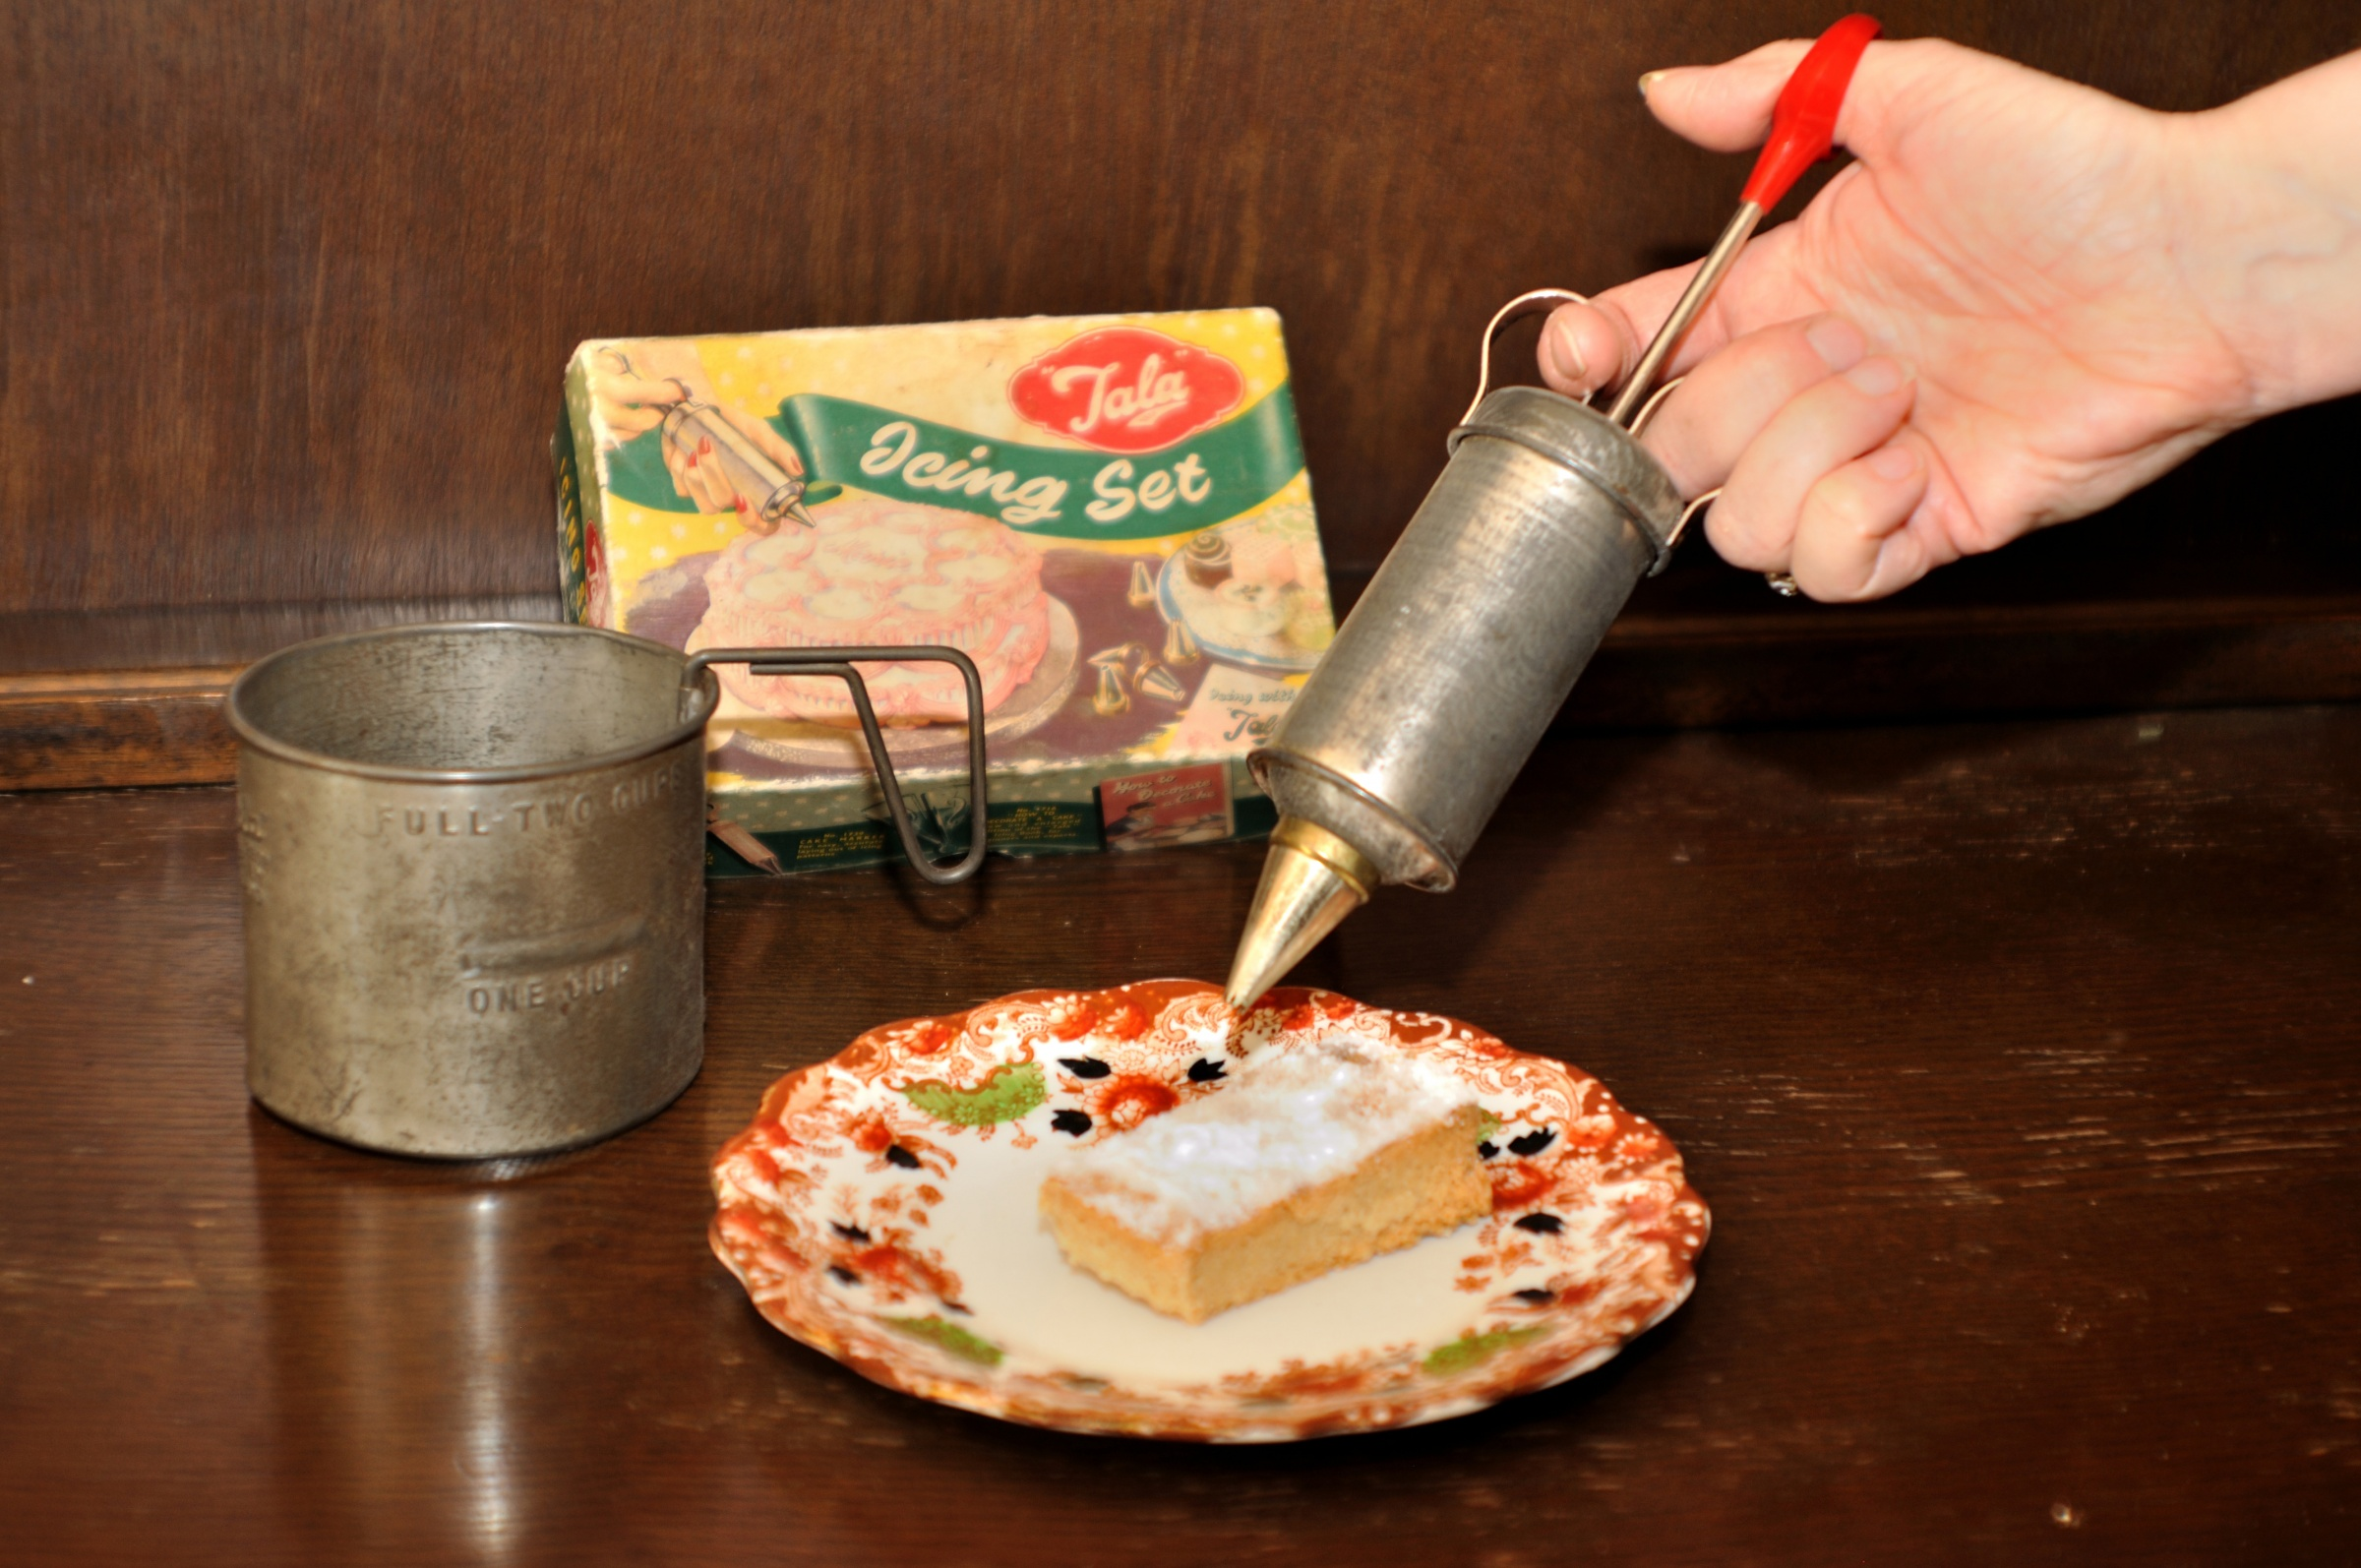 A Tala icing set c1950-60 and 1940s flour sifter.